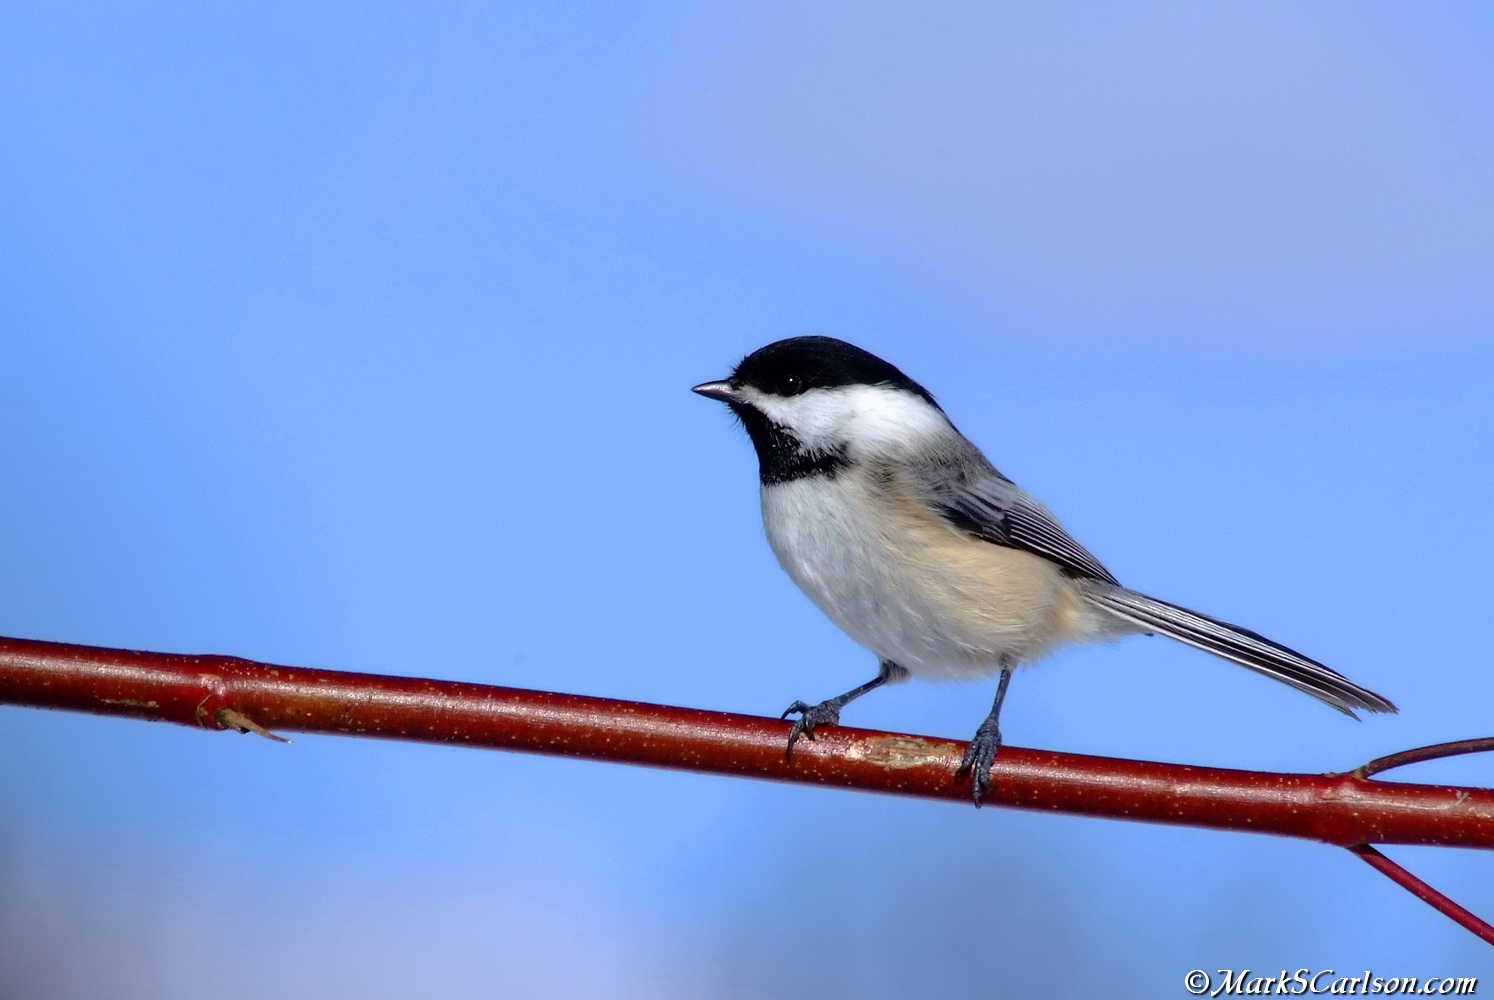 black-capped chickadee profile pose on red osier dogwood branch;©markscarlson.com_resize.jpg